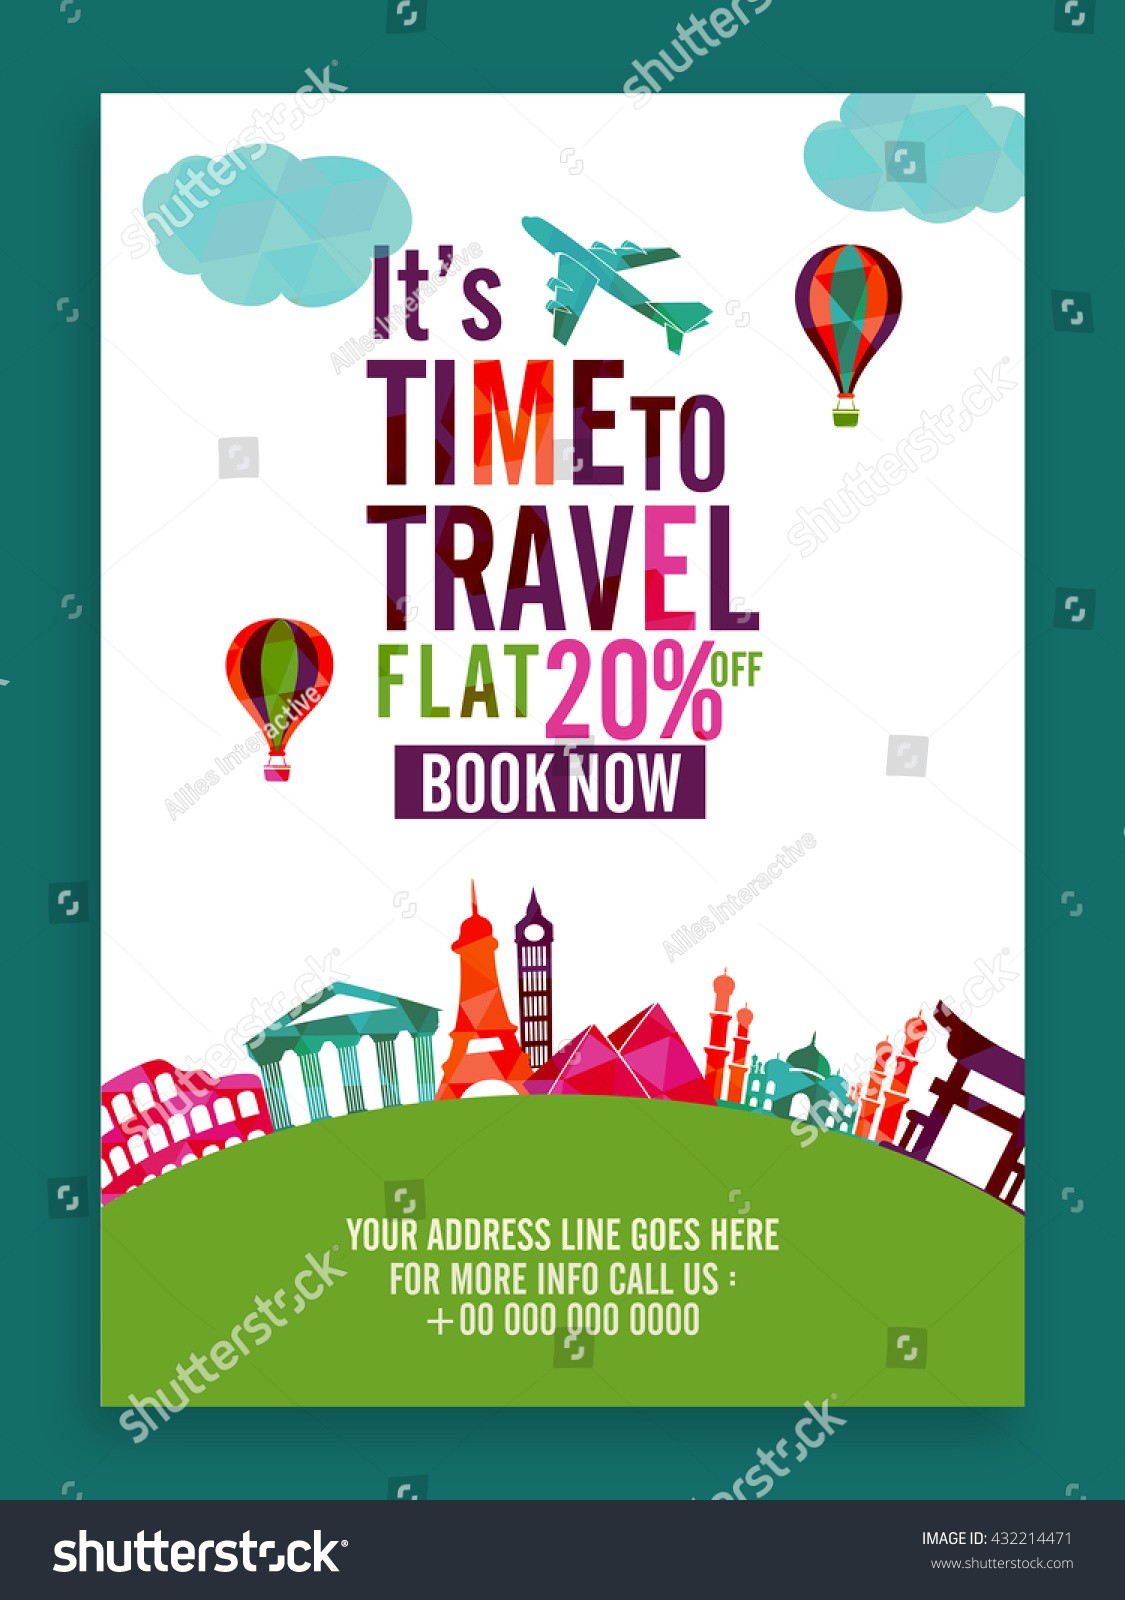 20 off flyer template  Time Travel Flat 20 Off On Stock Vector 432214471 ..